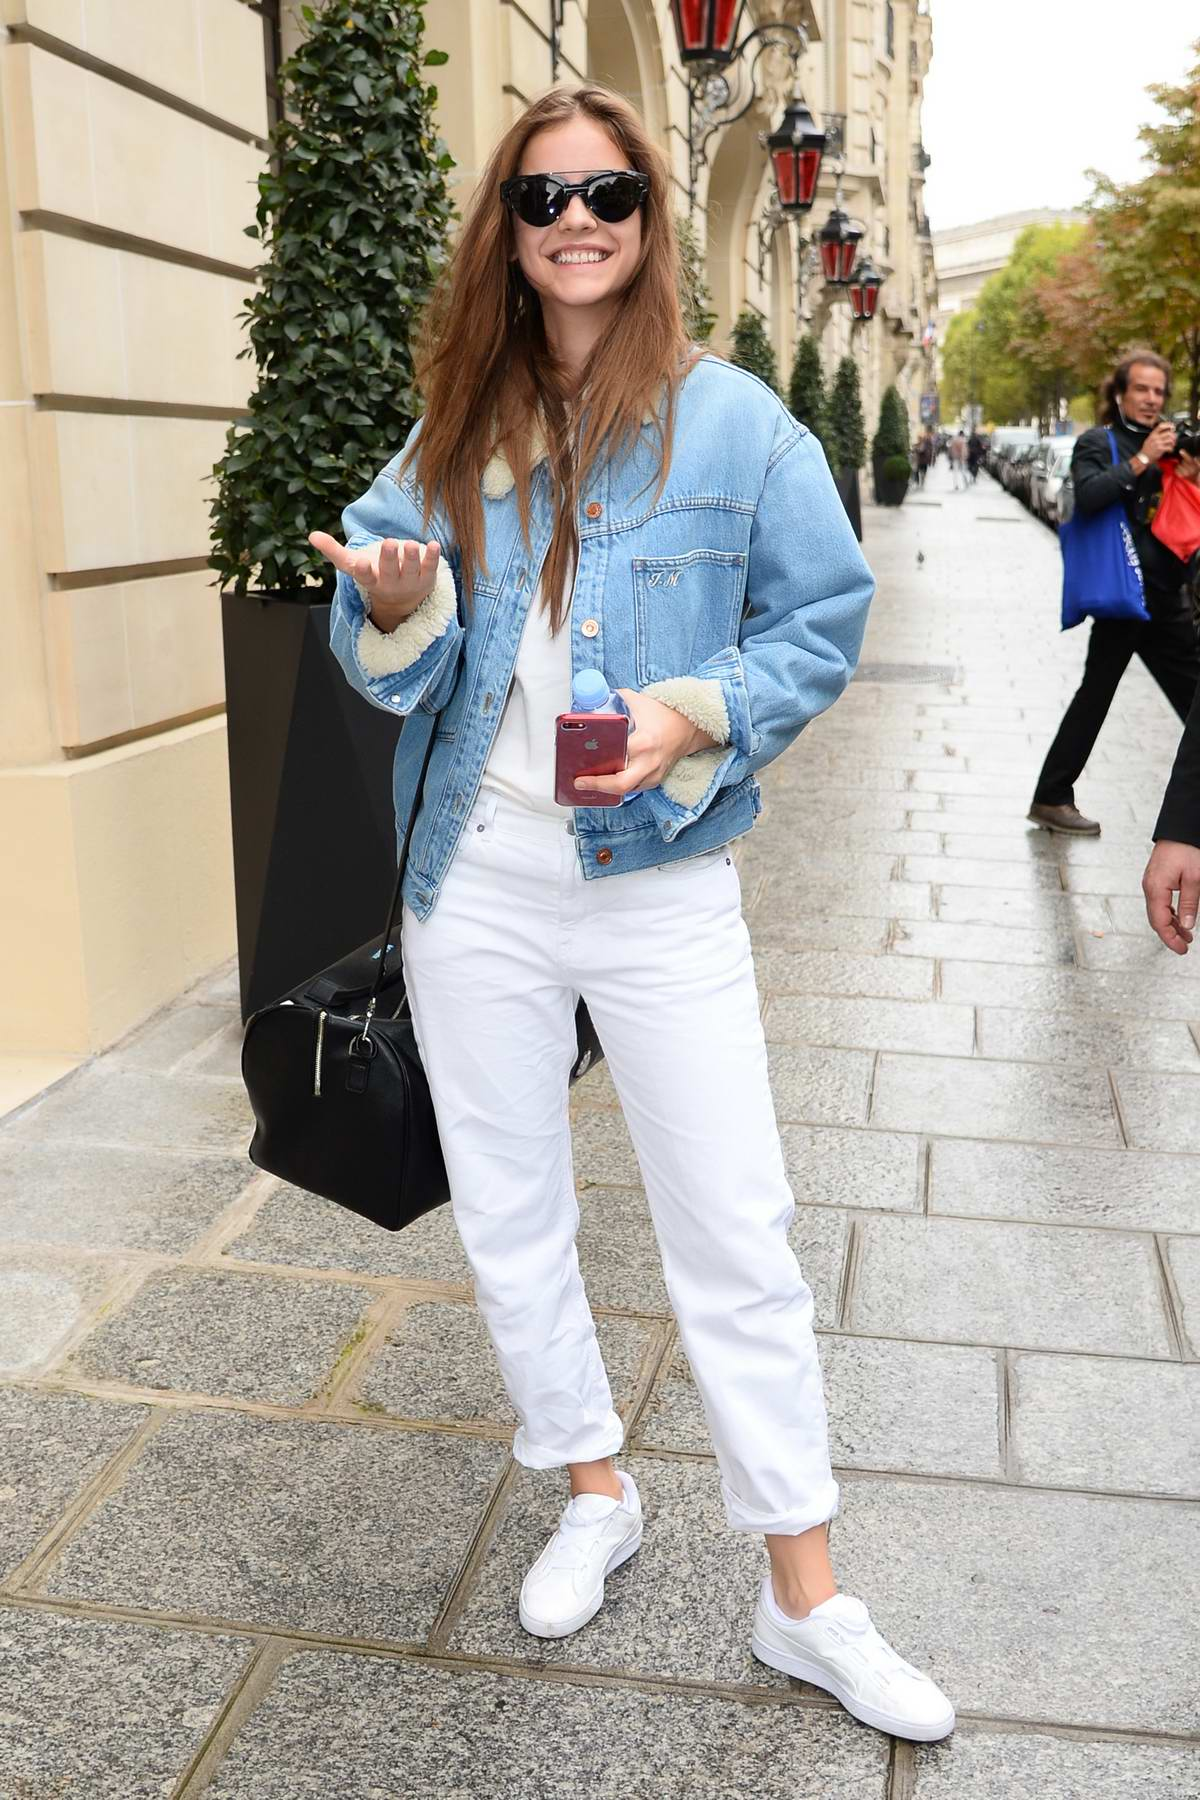 Barbara Palvin rocking all white with a blue denim jacket out during spring summer 2018 Fashion Week in Paris, France